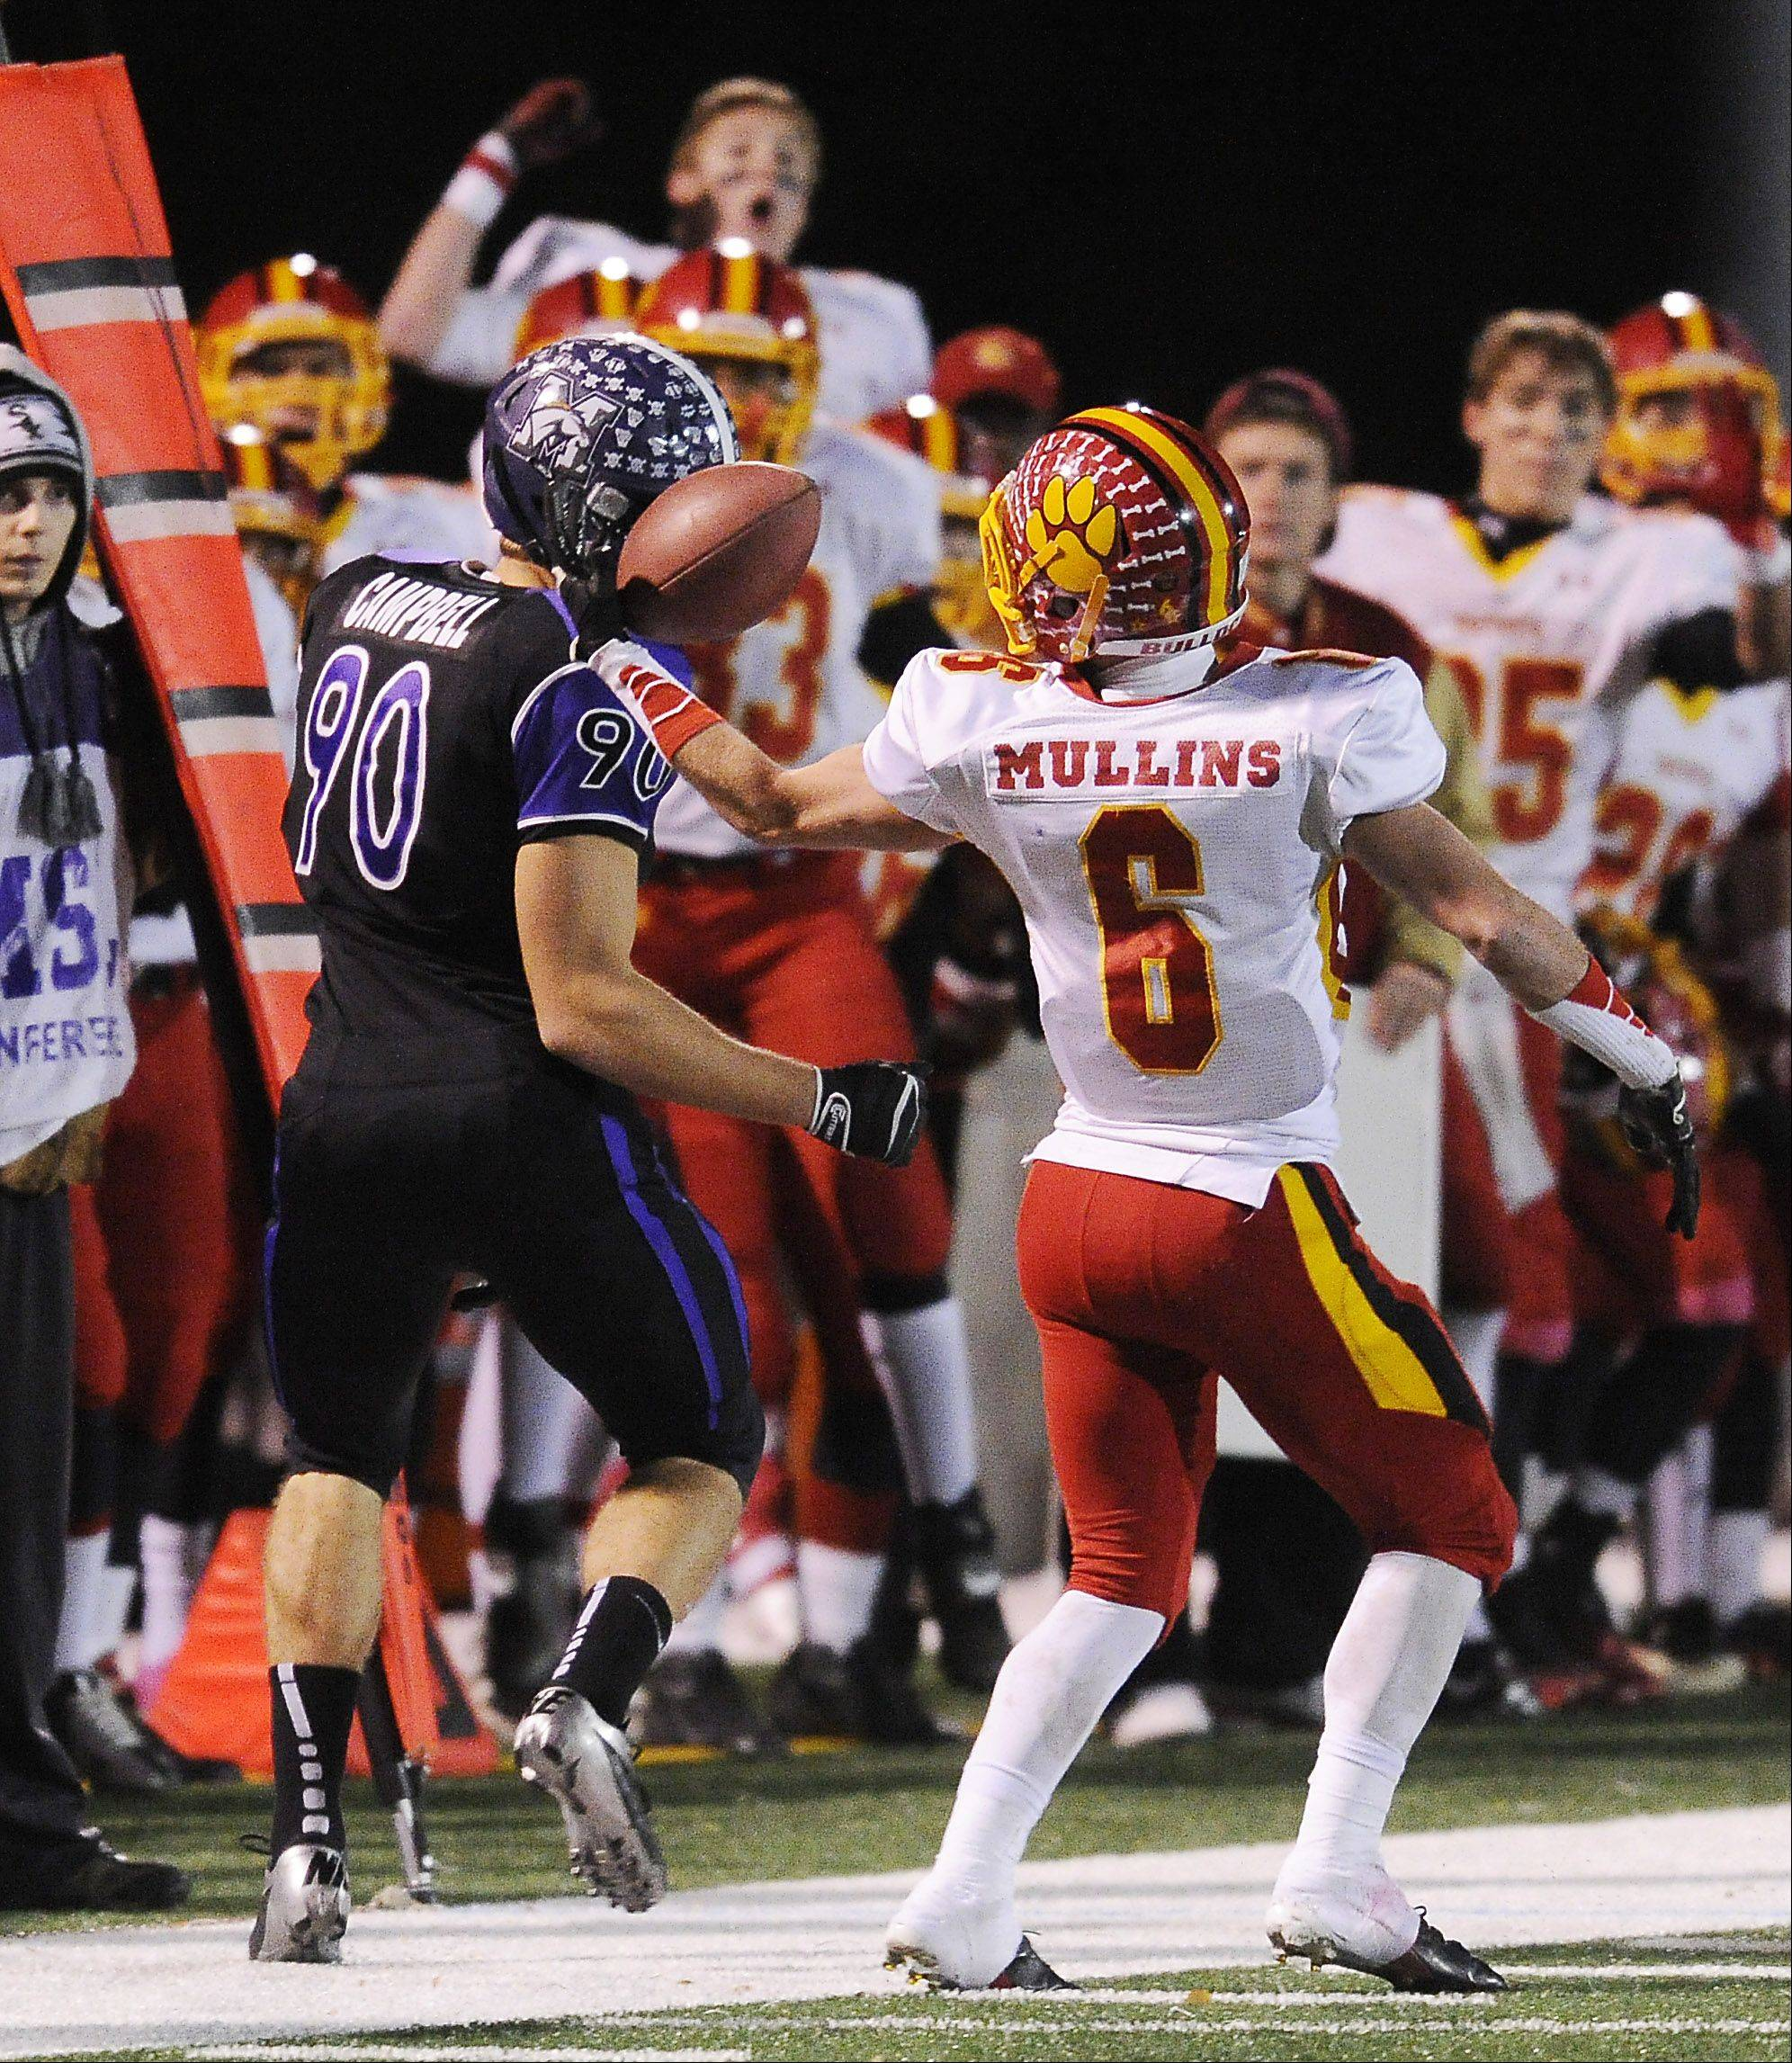 Batavia's Rouke Mullins takes the ball away from Rolling Meadows' Matt Campbell in the second quarter of Class 6A playoff action Saturday at Rolling Meadows.